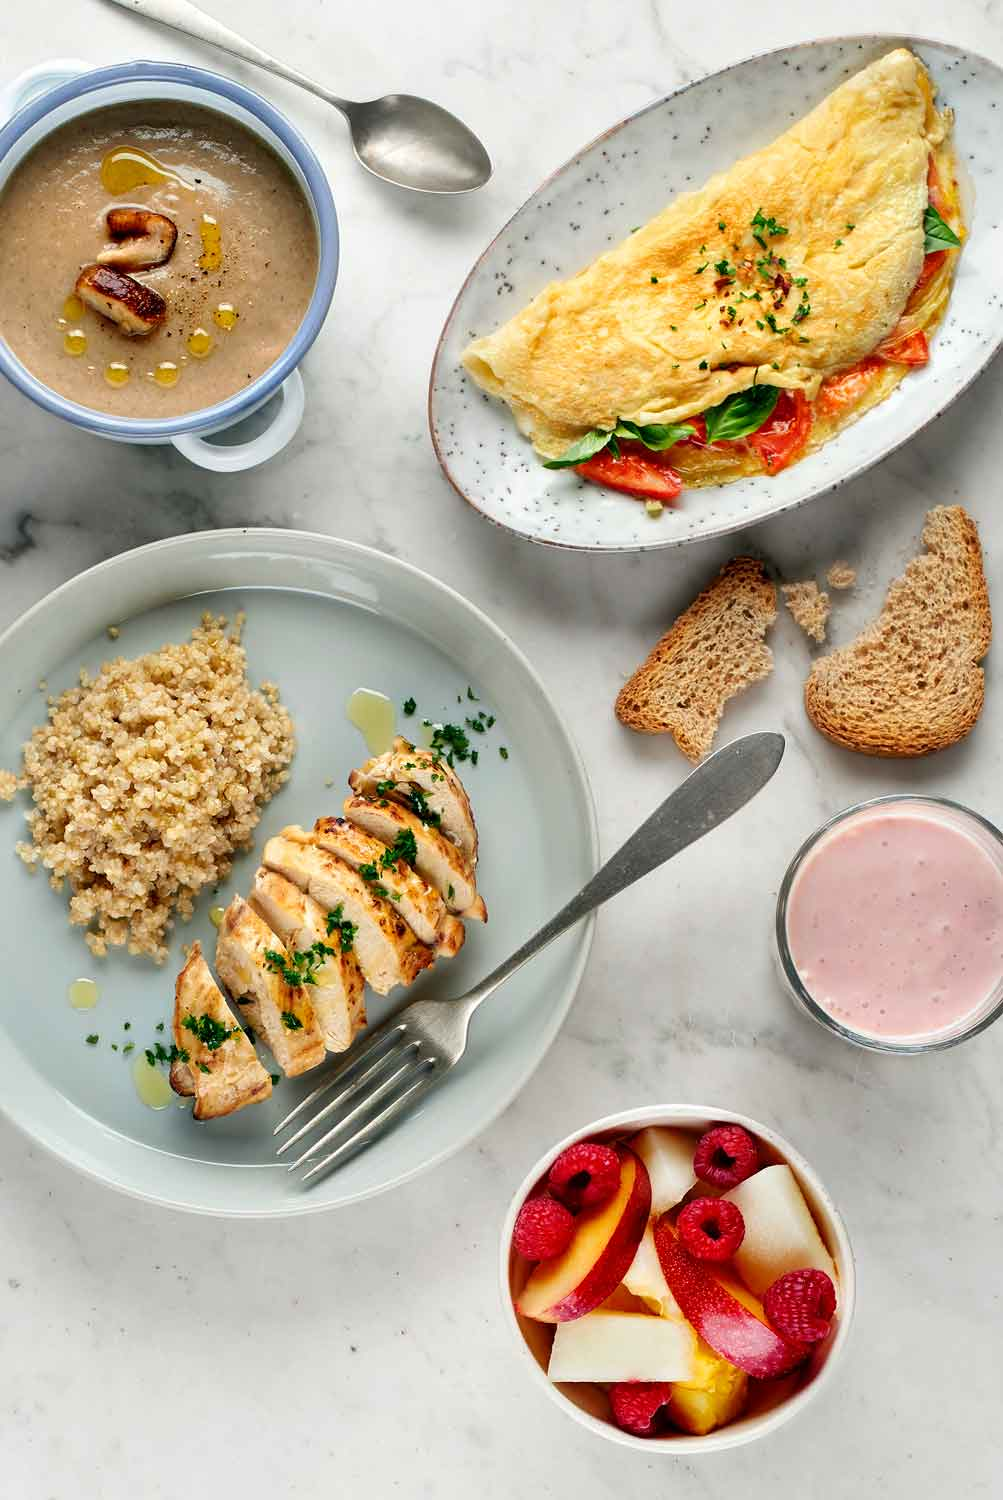 forfood-welthy-healthy-menu-photography